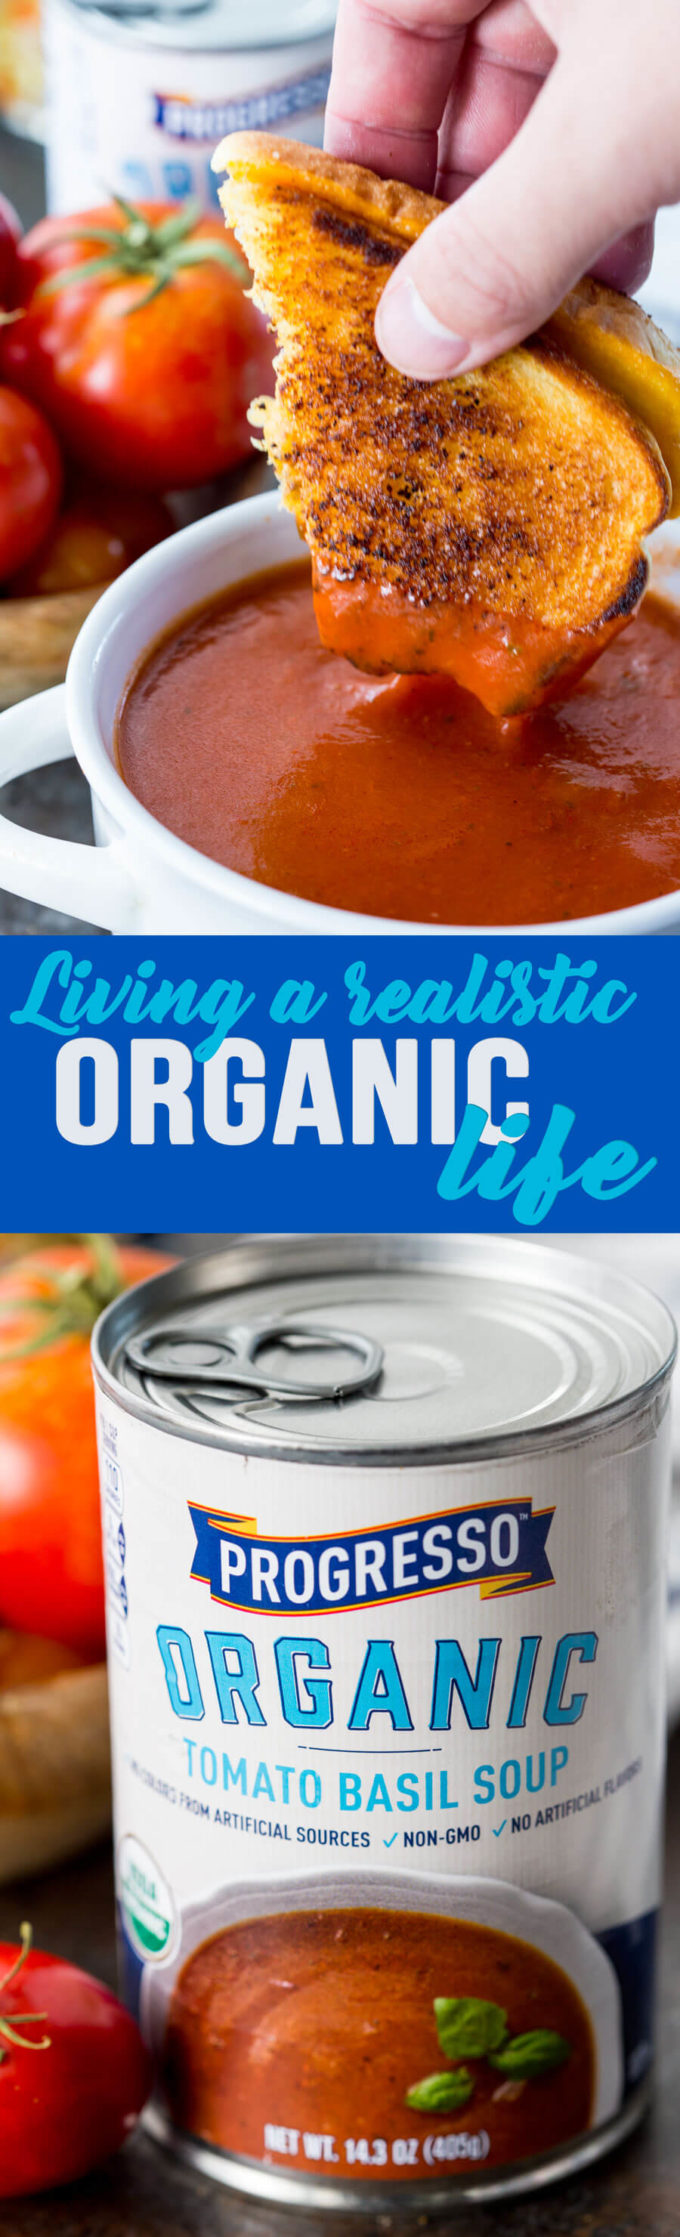 Eating organic in a realistic way, realistic organic lifestyle